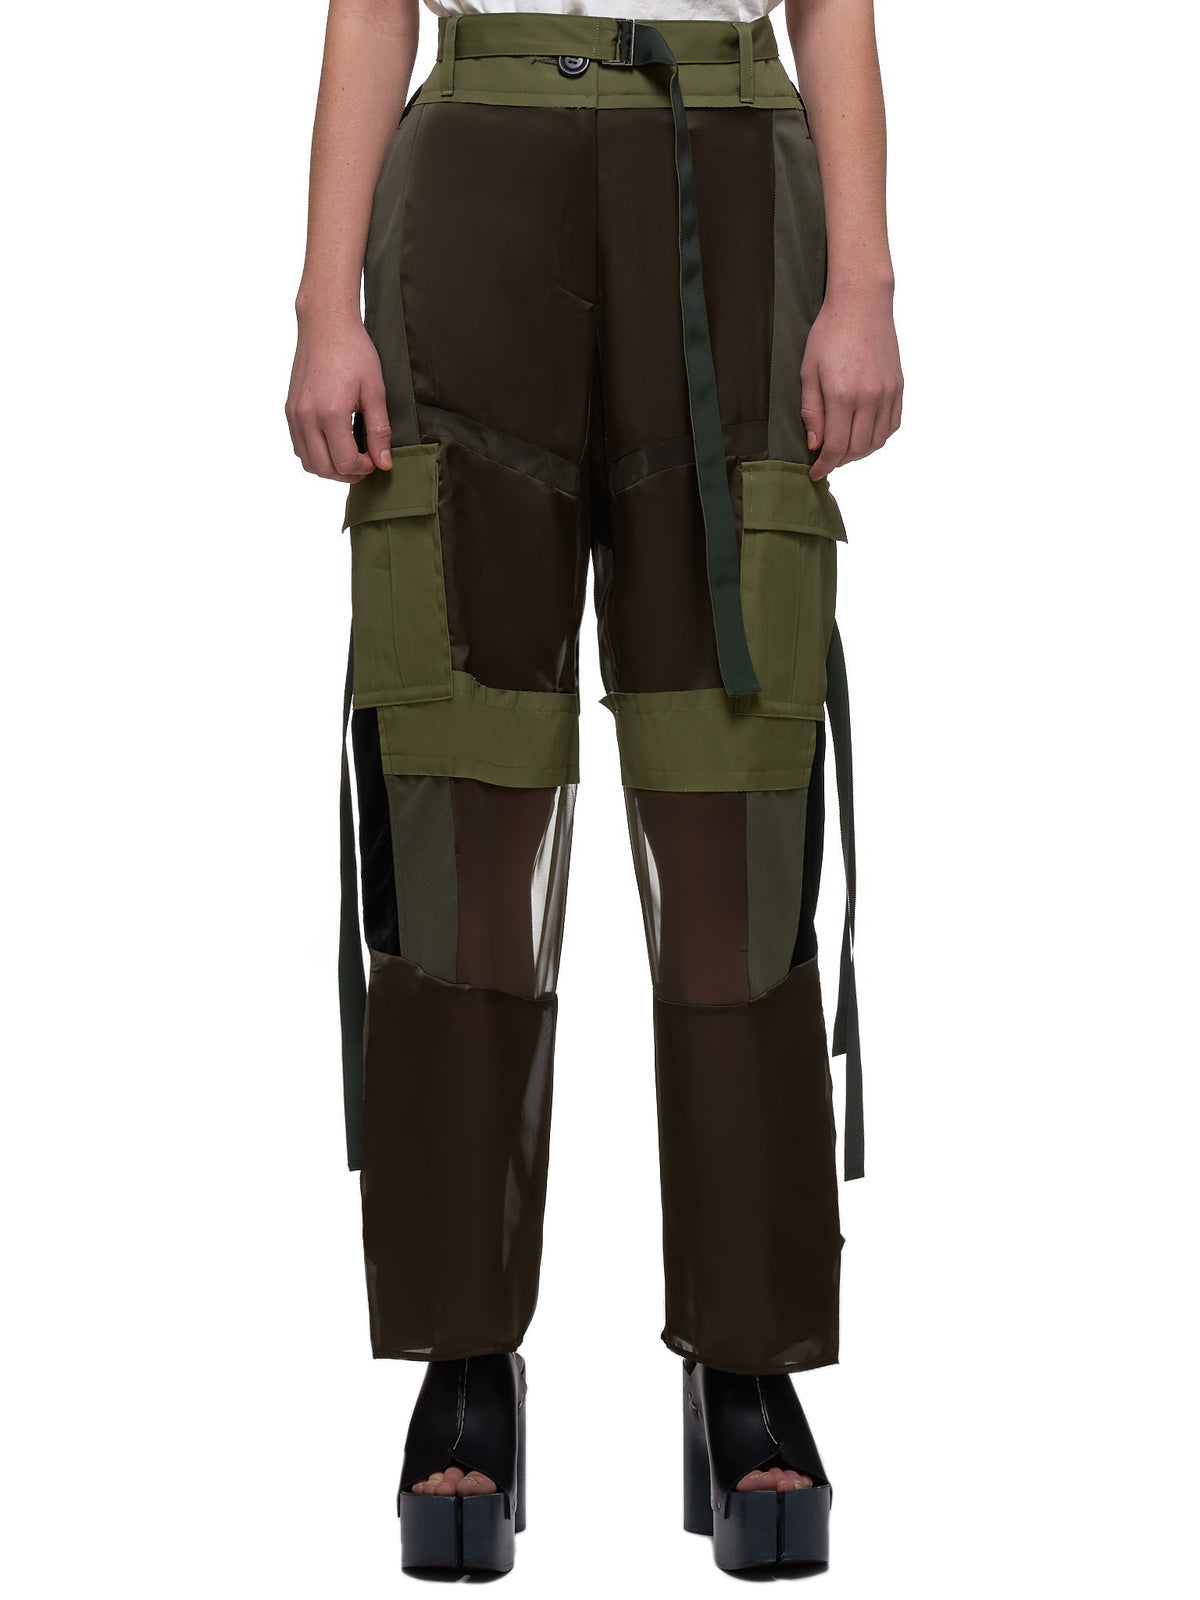 Patchwork Trousers (04902-501-KHAKI)